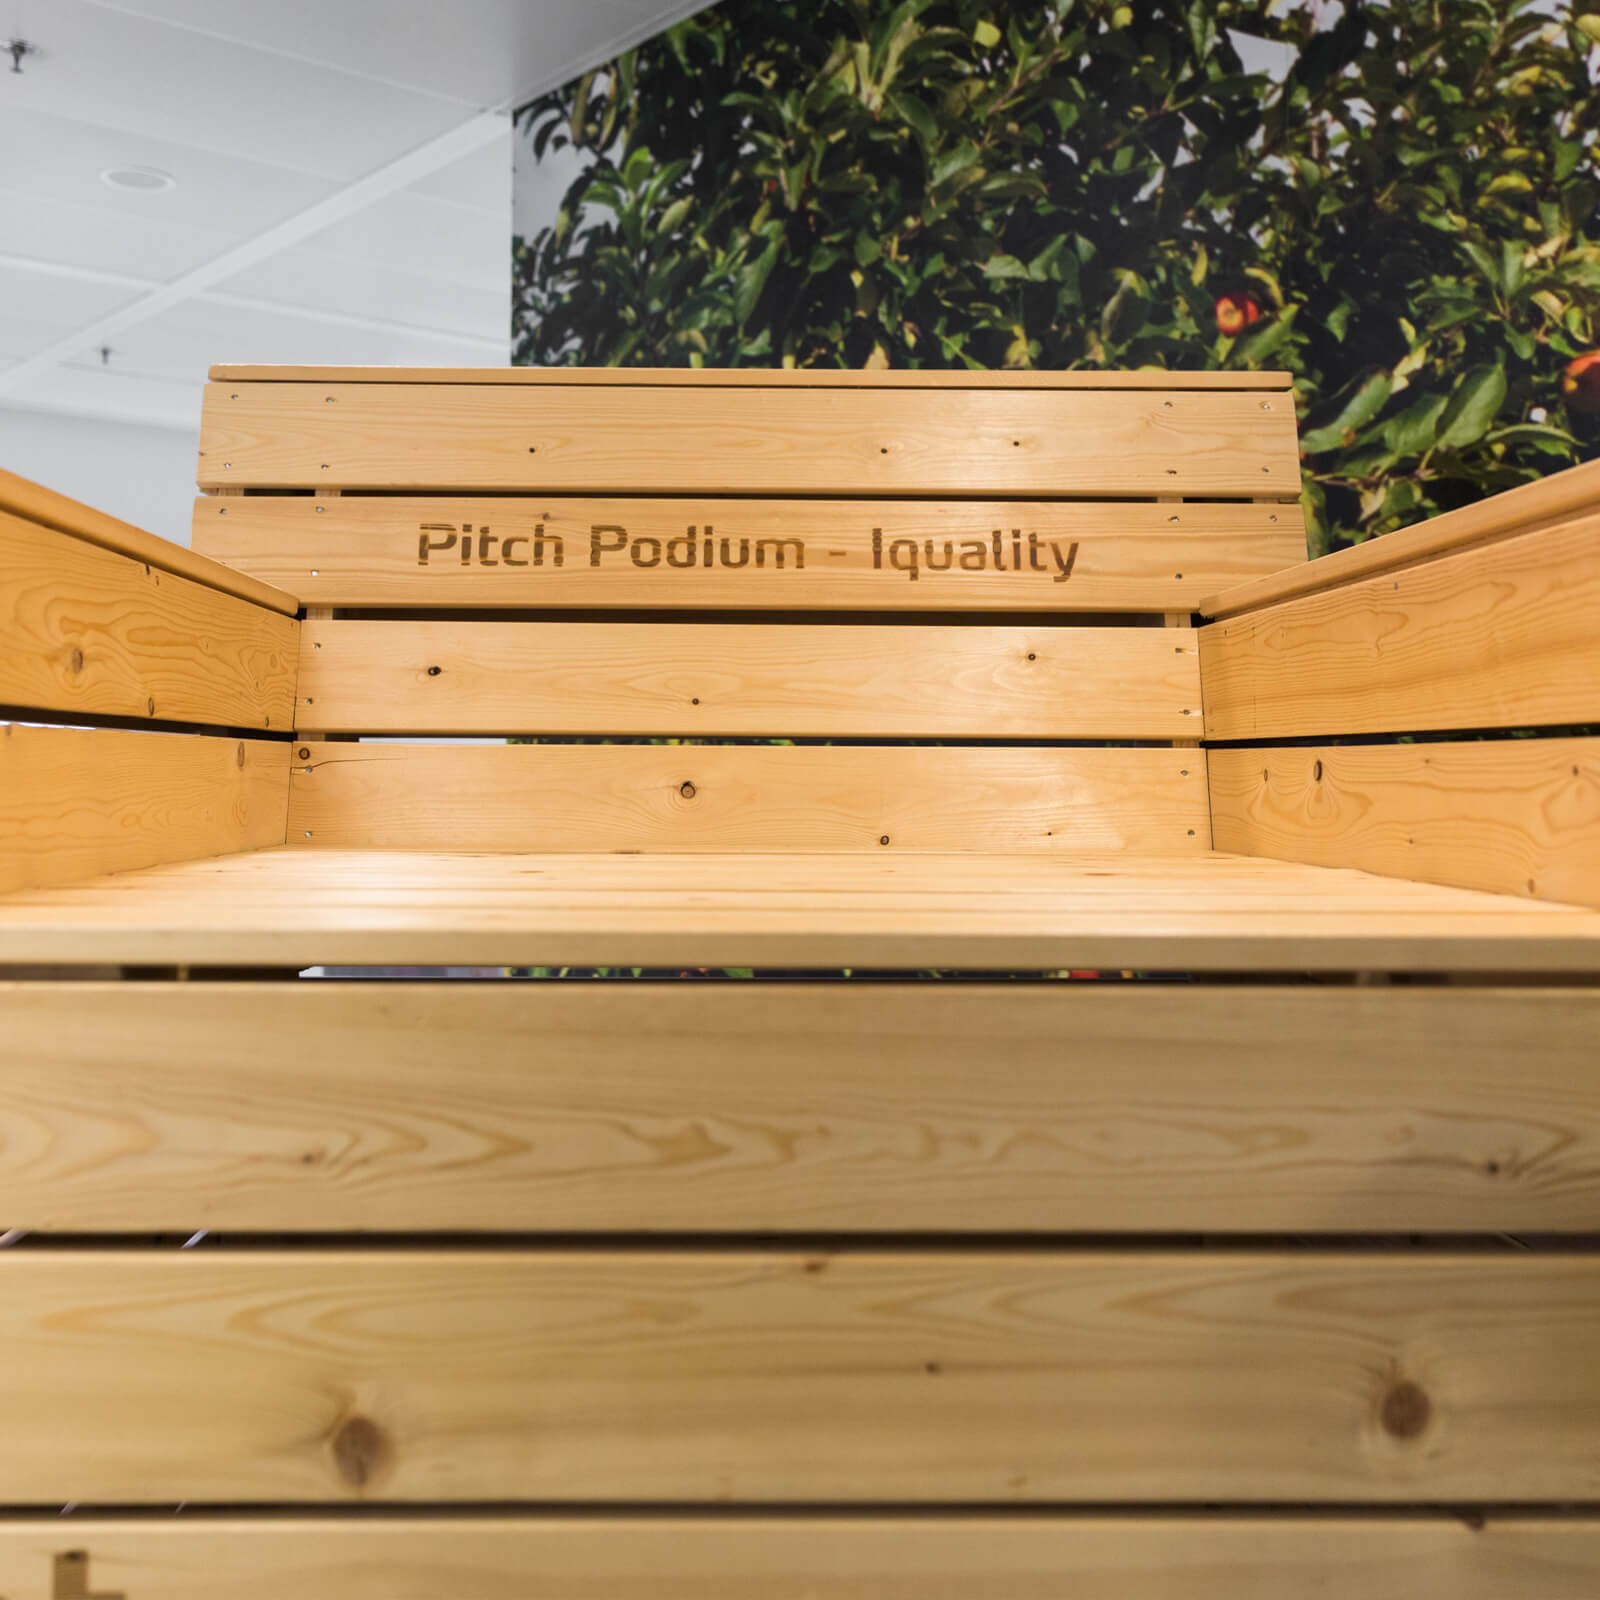 Pitchpodium Iquality